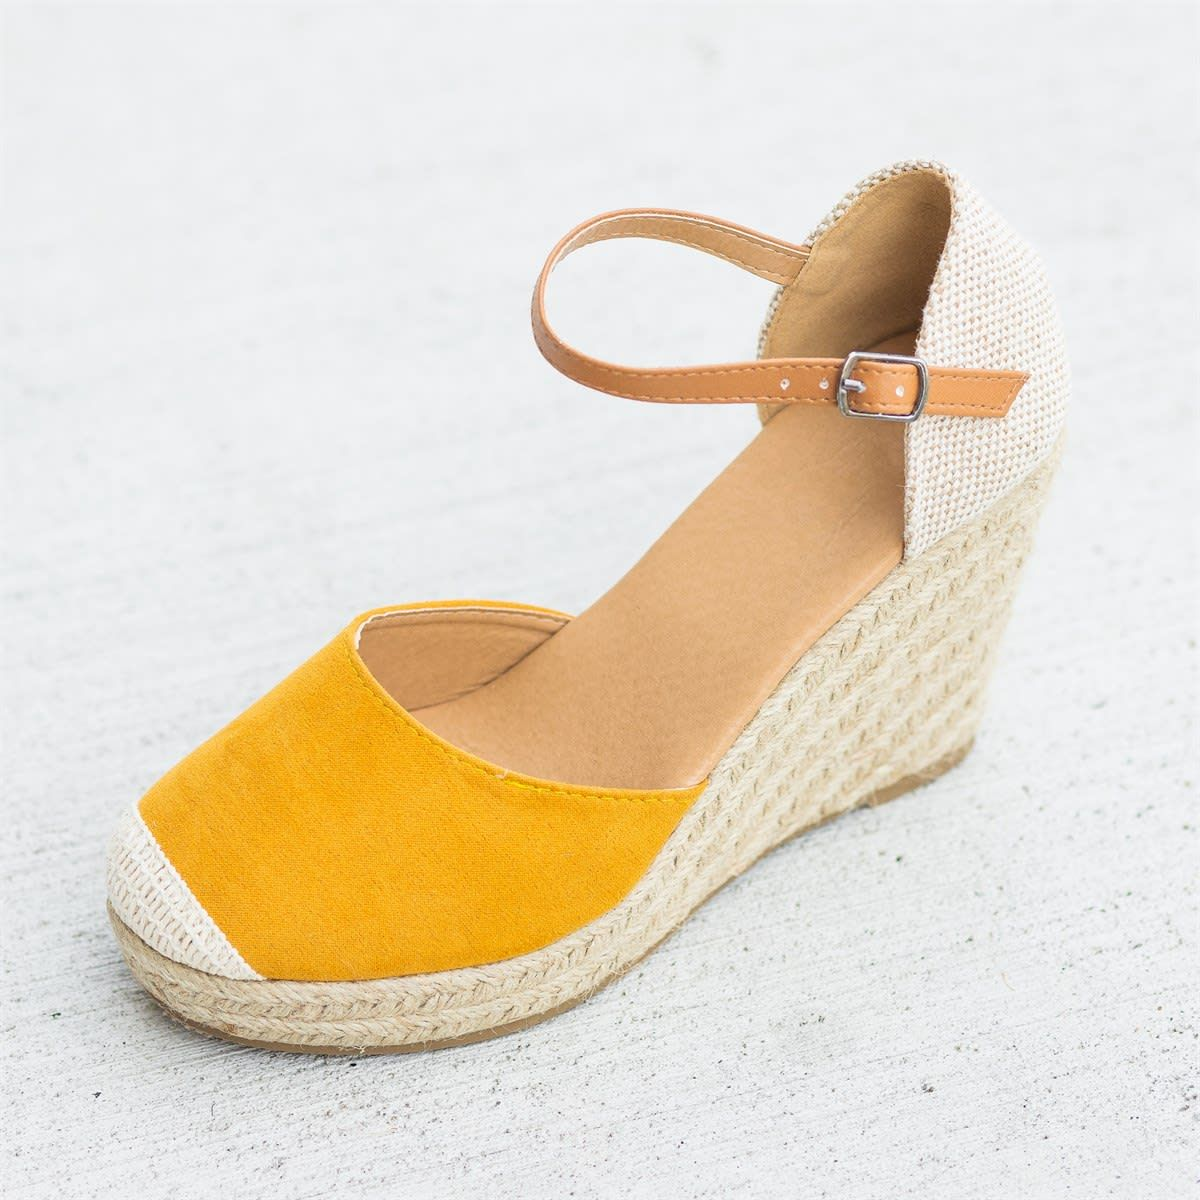 596093b7b0d Classic Summer Espadrille Wedges I 3+ Colors in 2019   Shoes ...